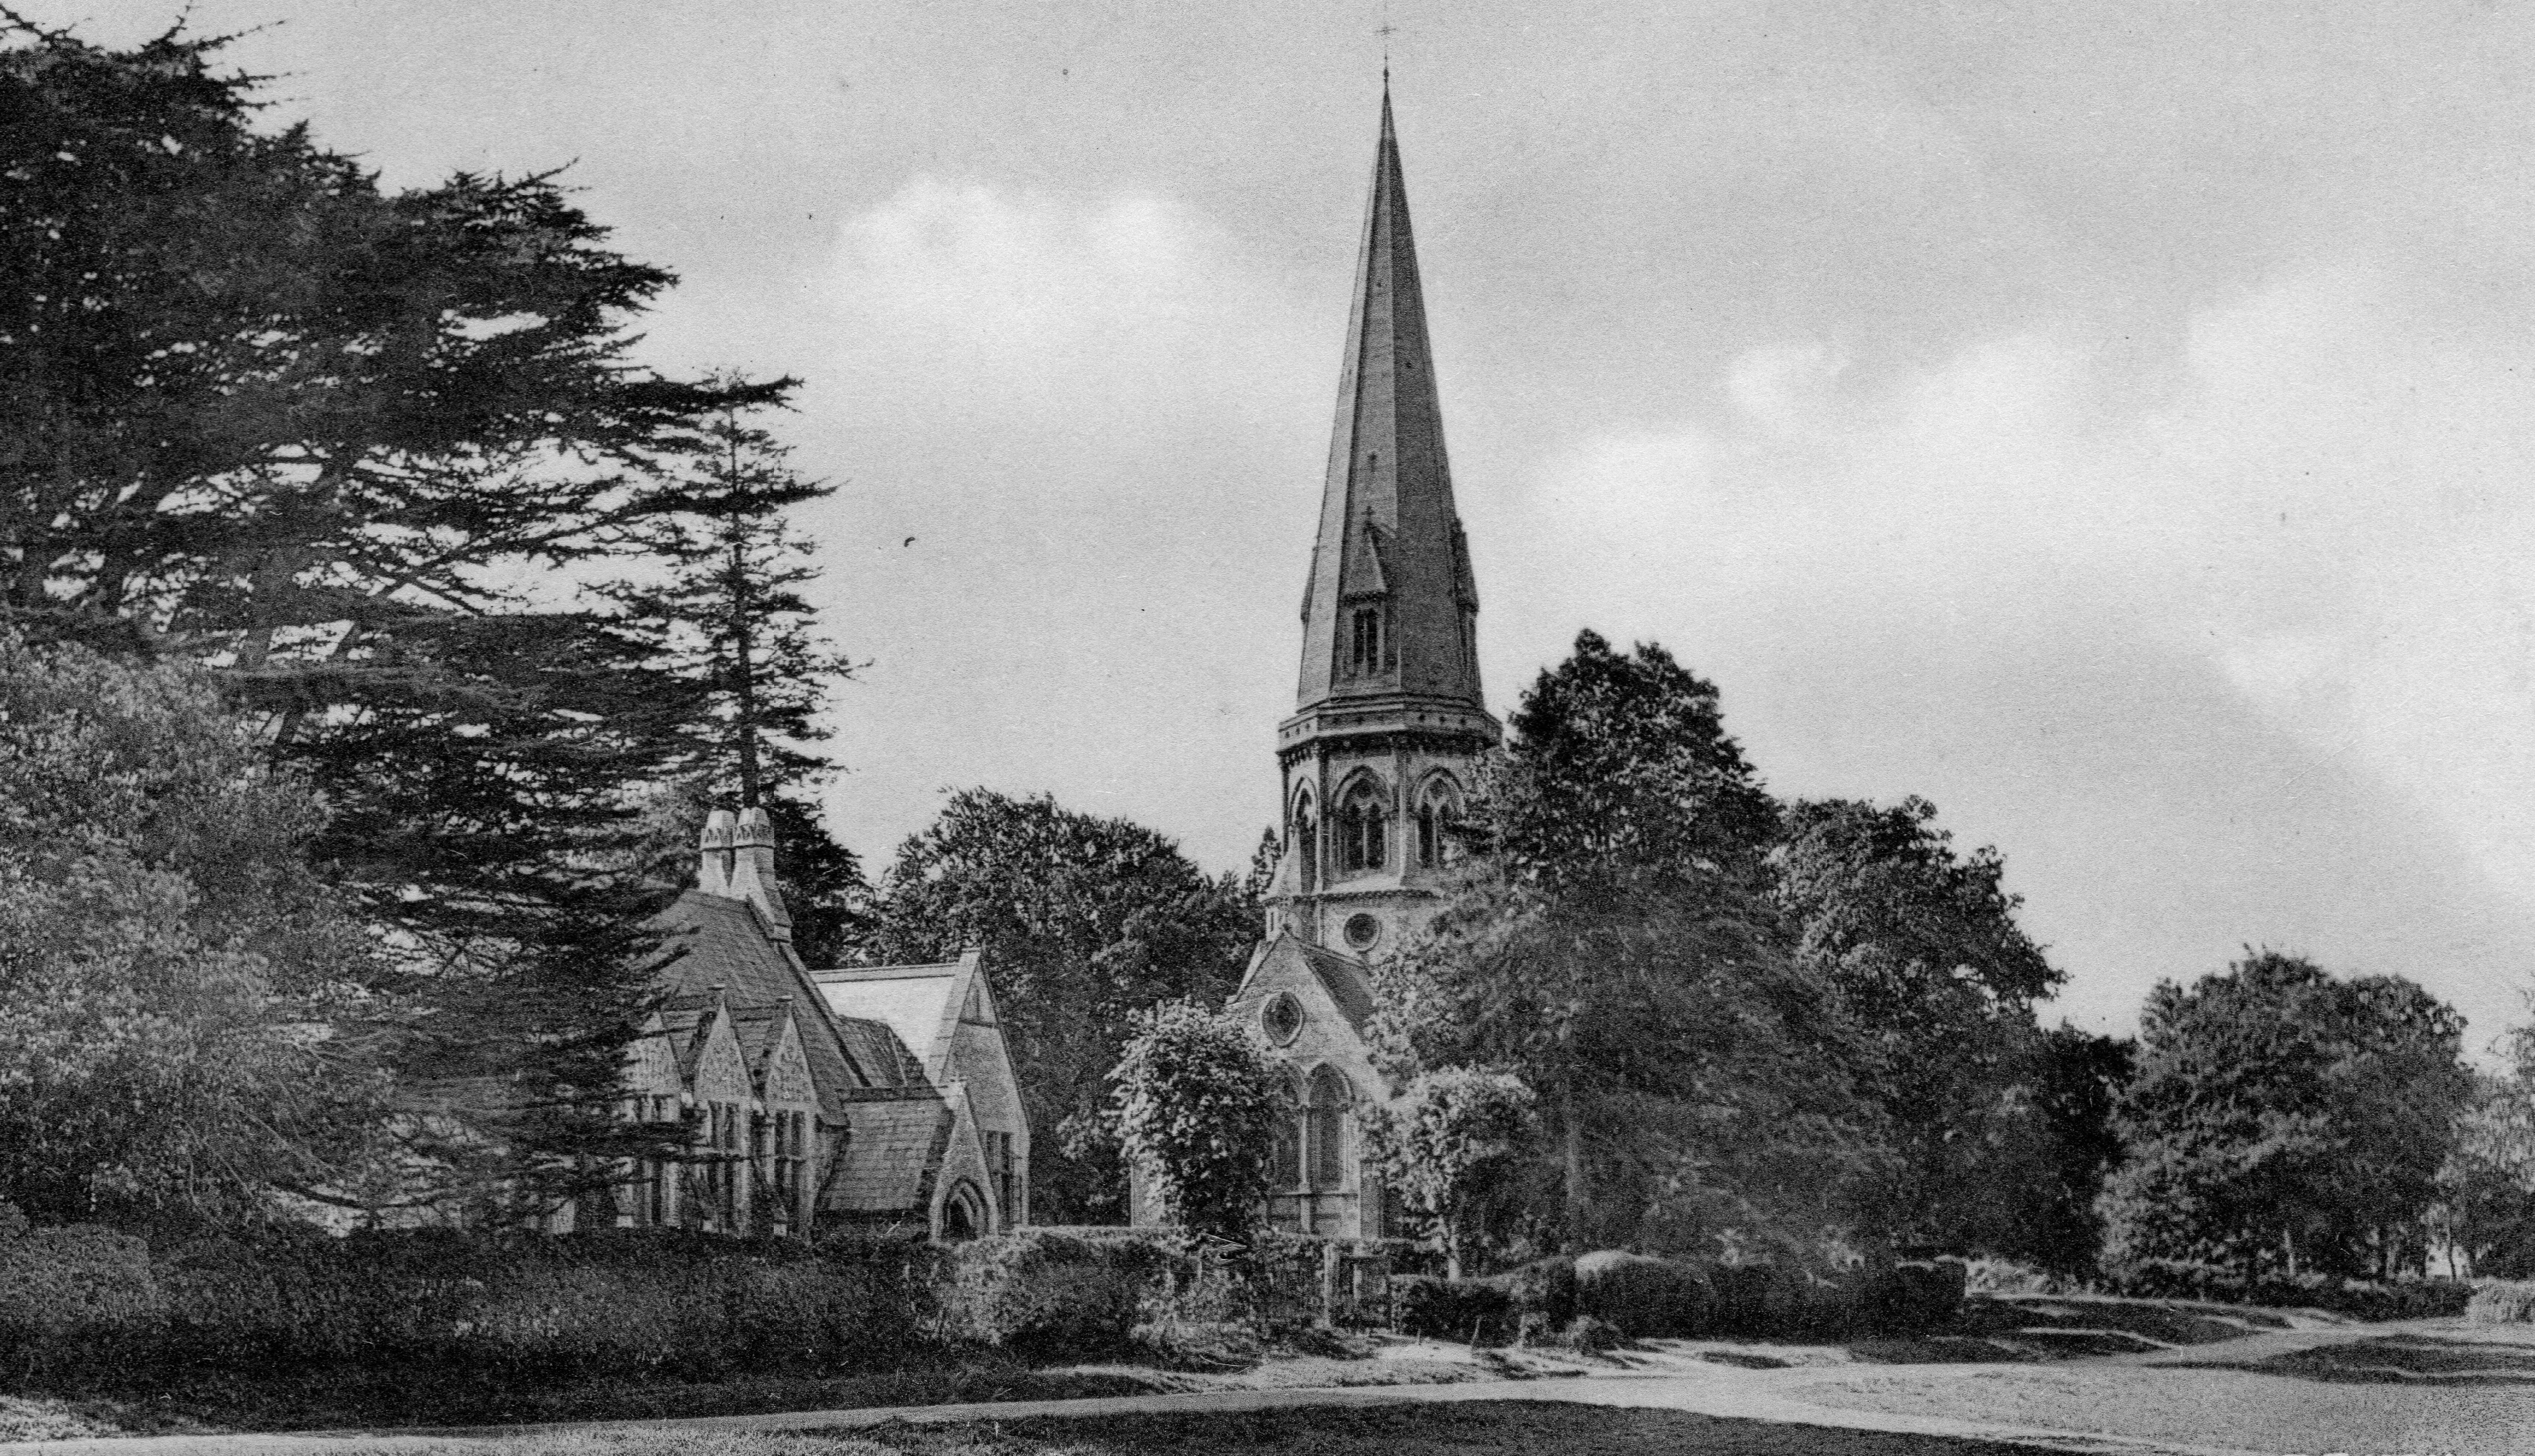 St Barnabas School, to which William Thomas and all his siblings went, Friths, from the postcard collection of Alison Newton